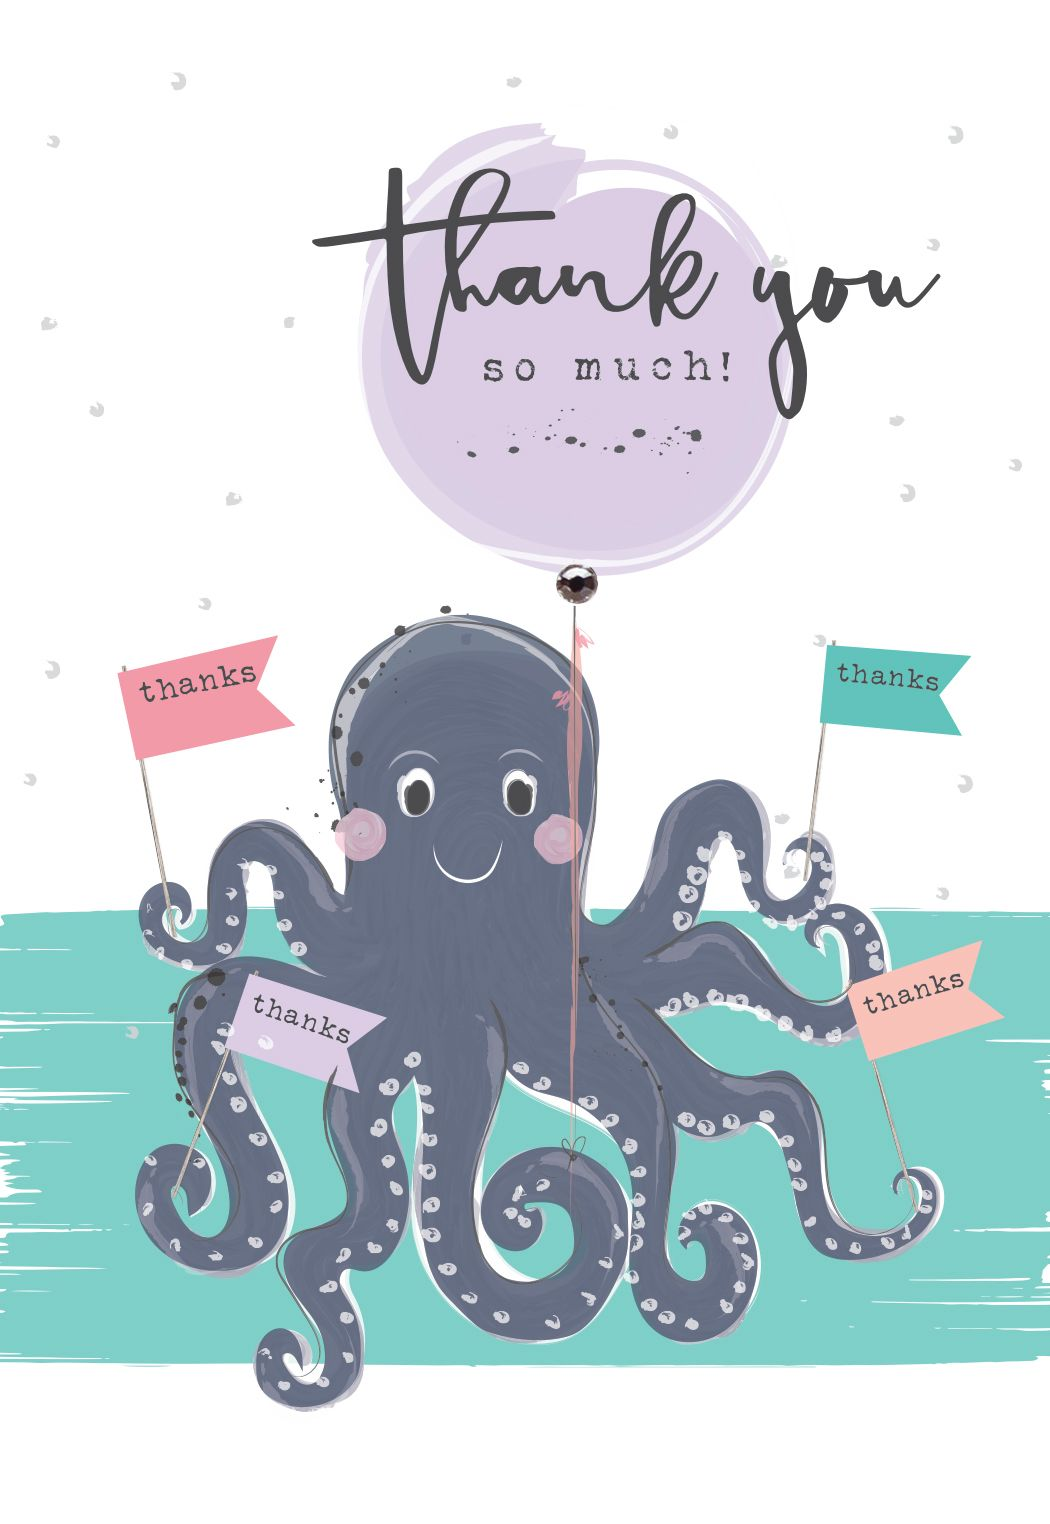 Thank You Cards - THANK You So MUCH - Funny THANK You CARDS - Octopus THANK